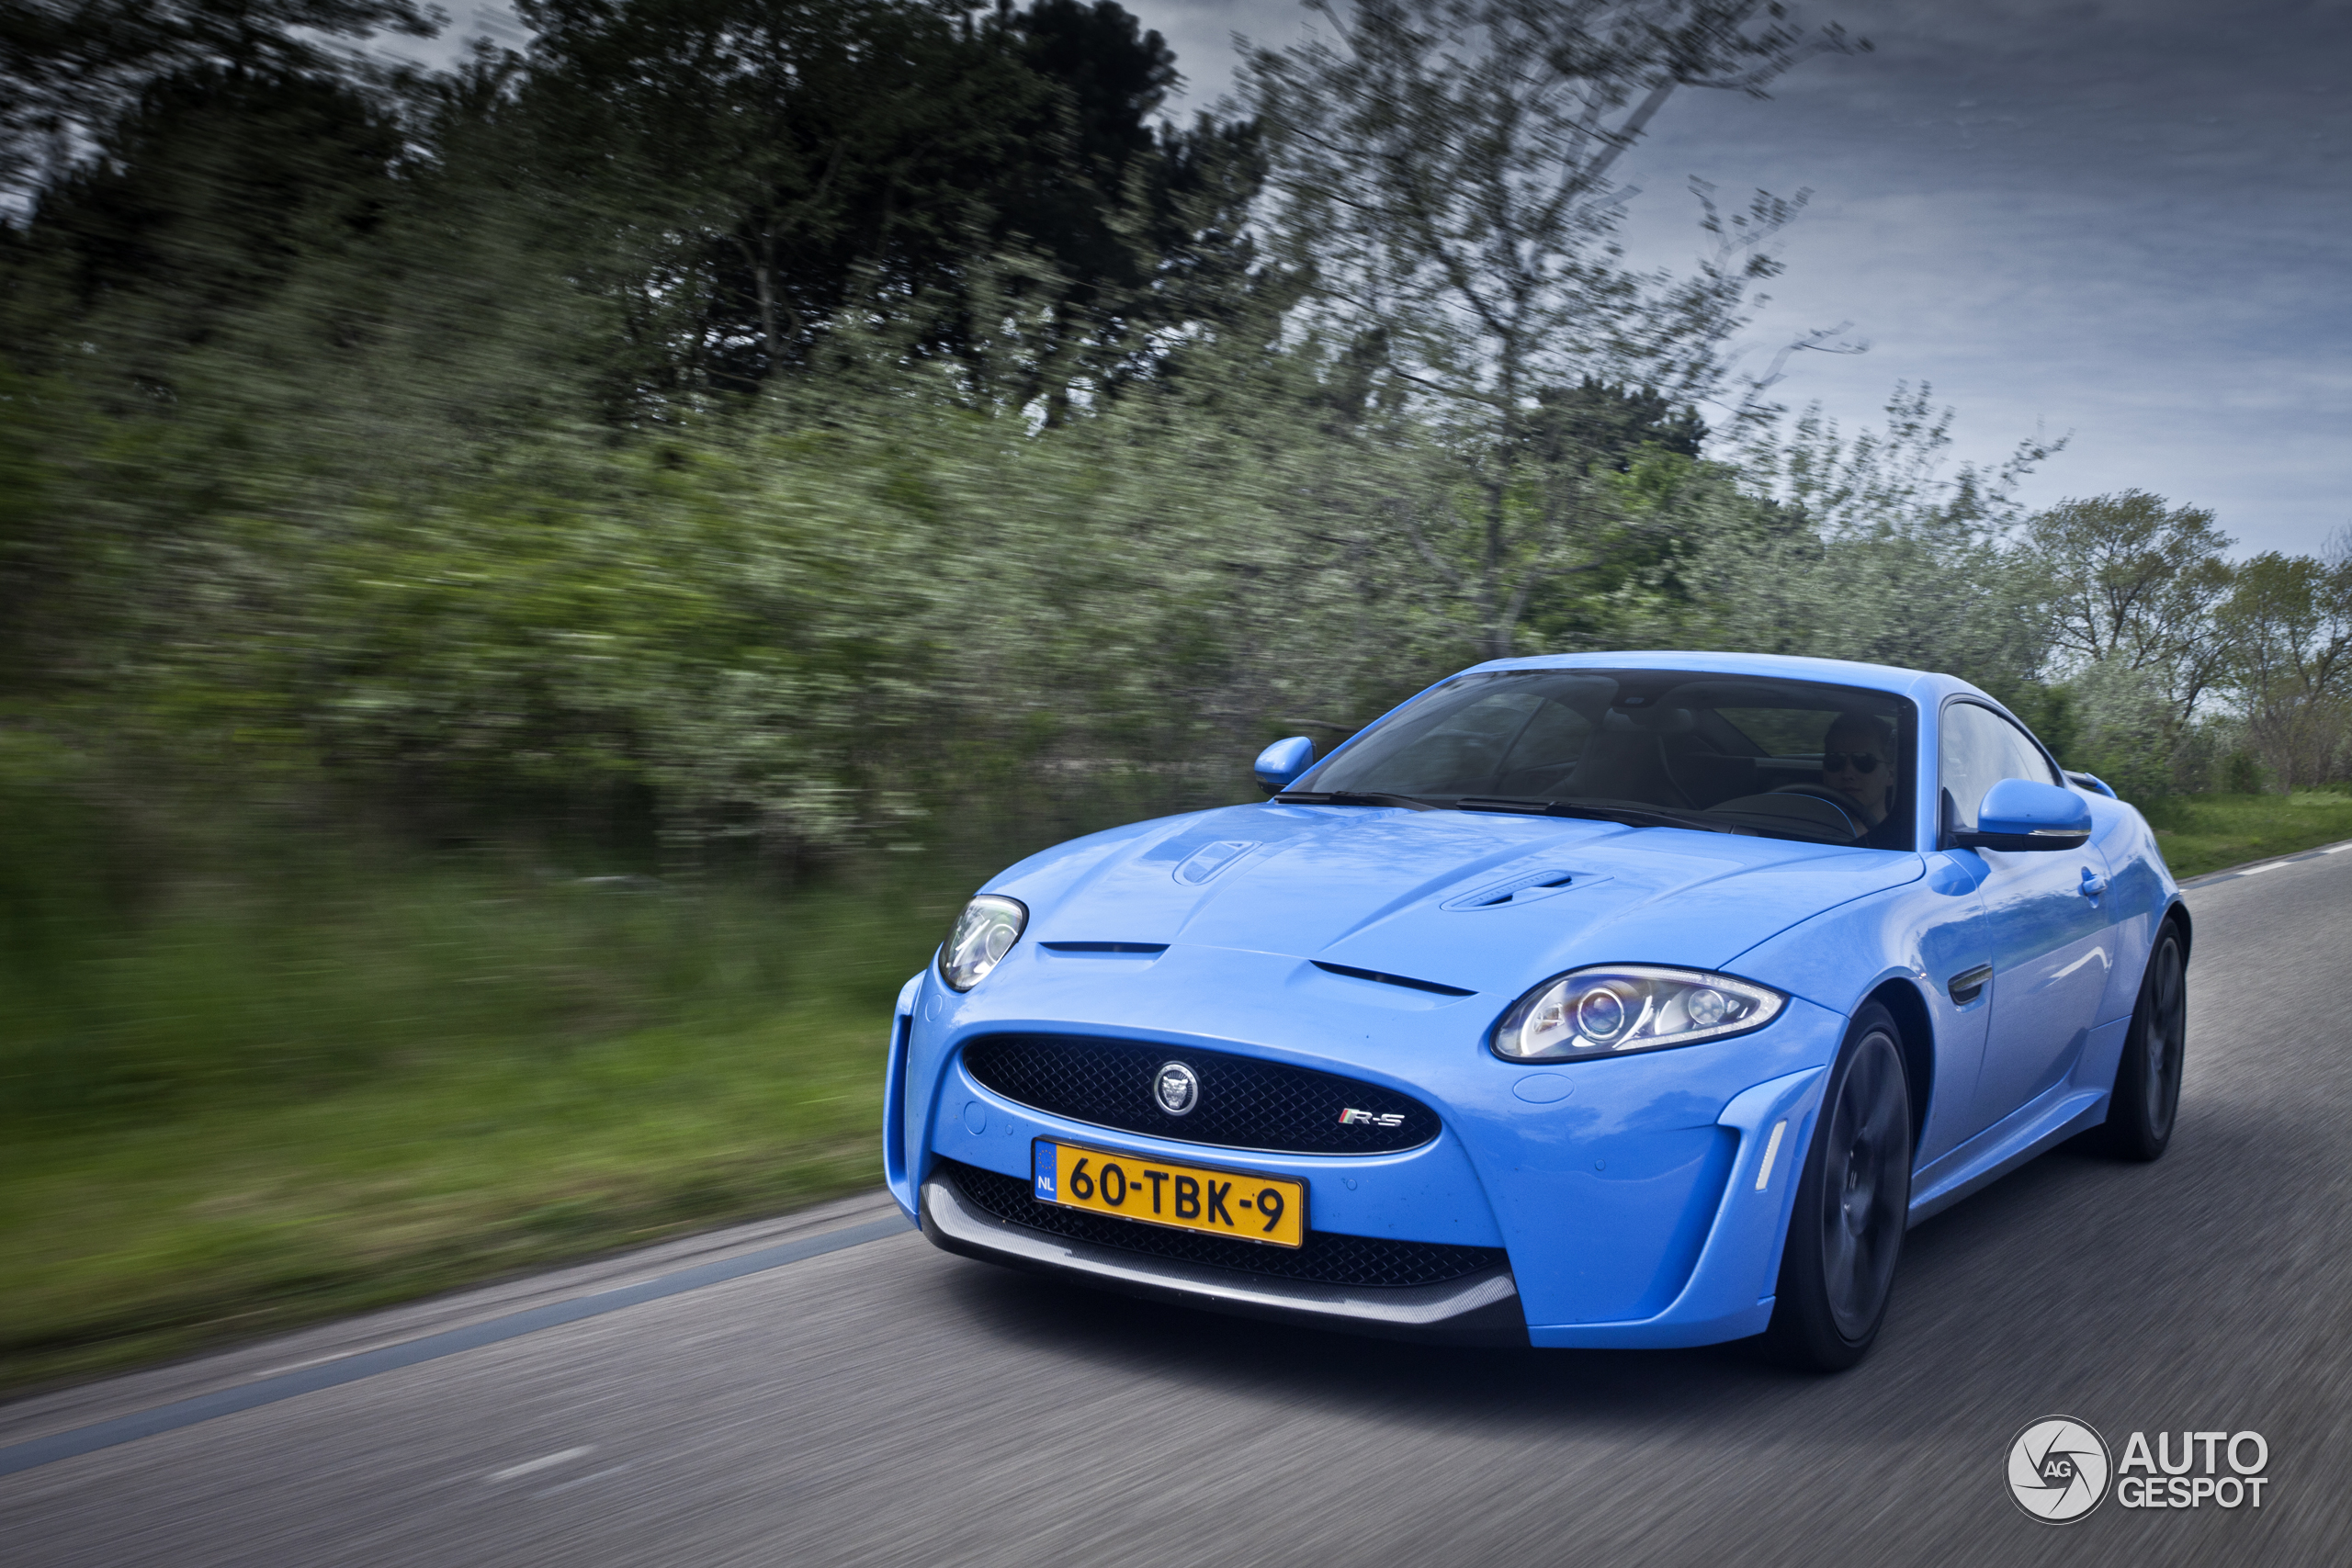 xkr jaguar forum southwest img sale classifieds owned for trade certified fs buy s private pre